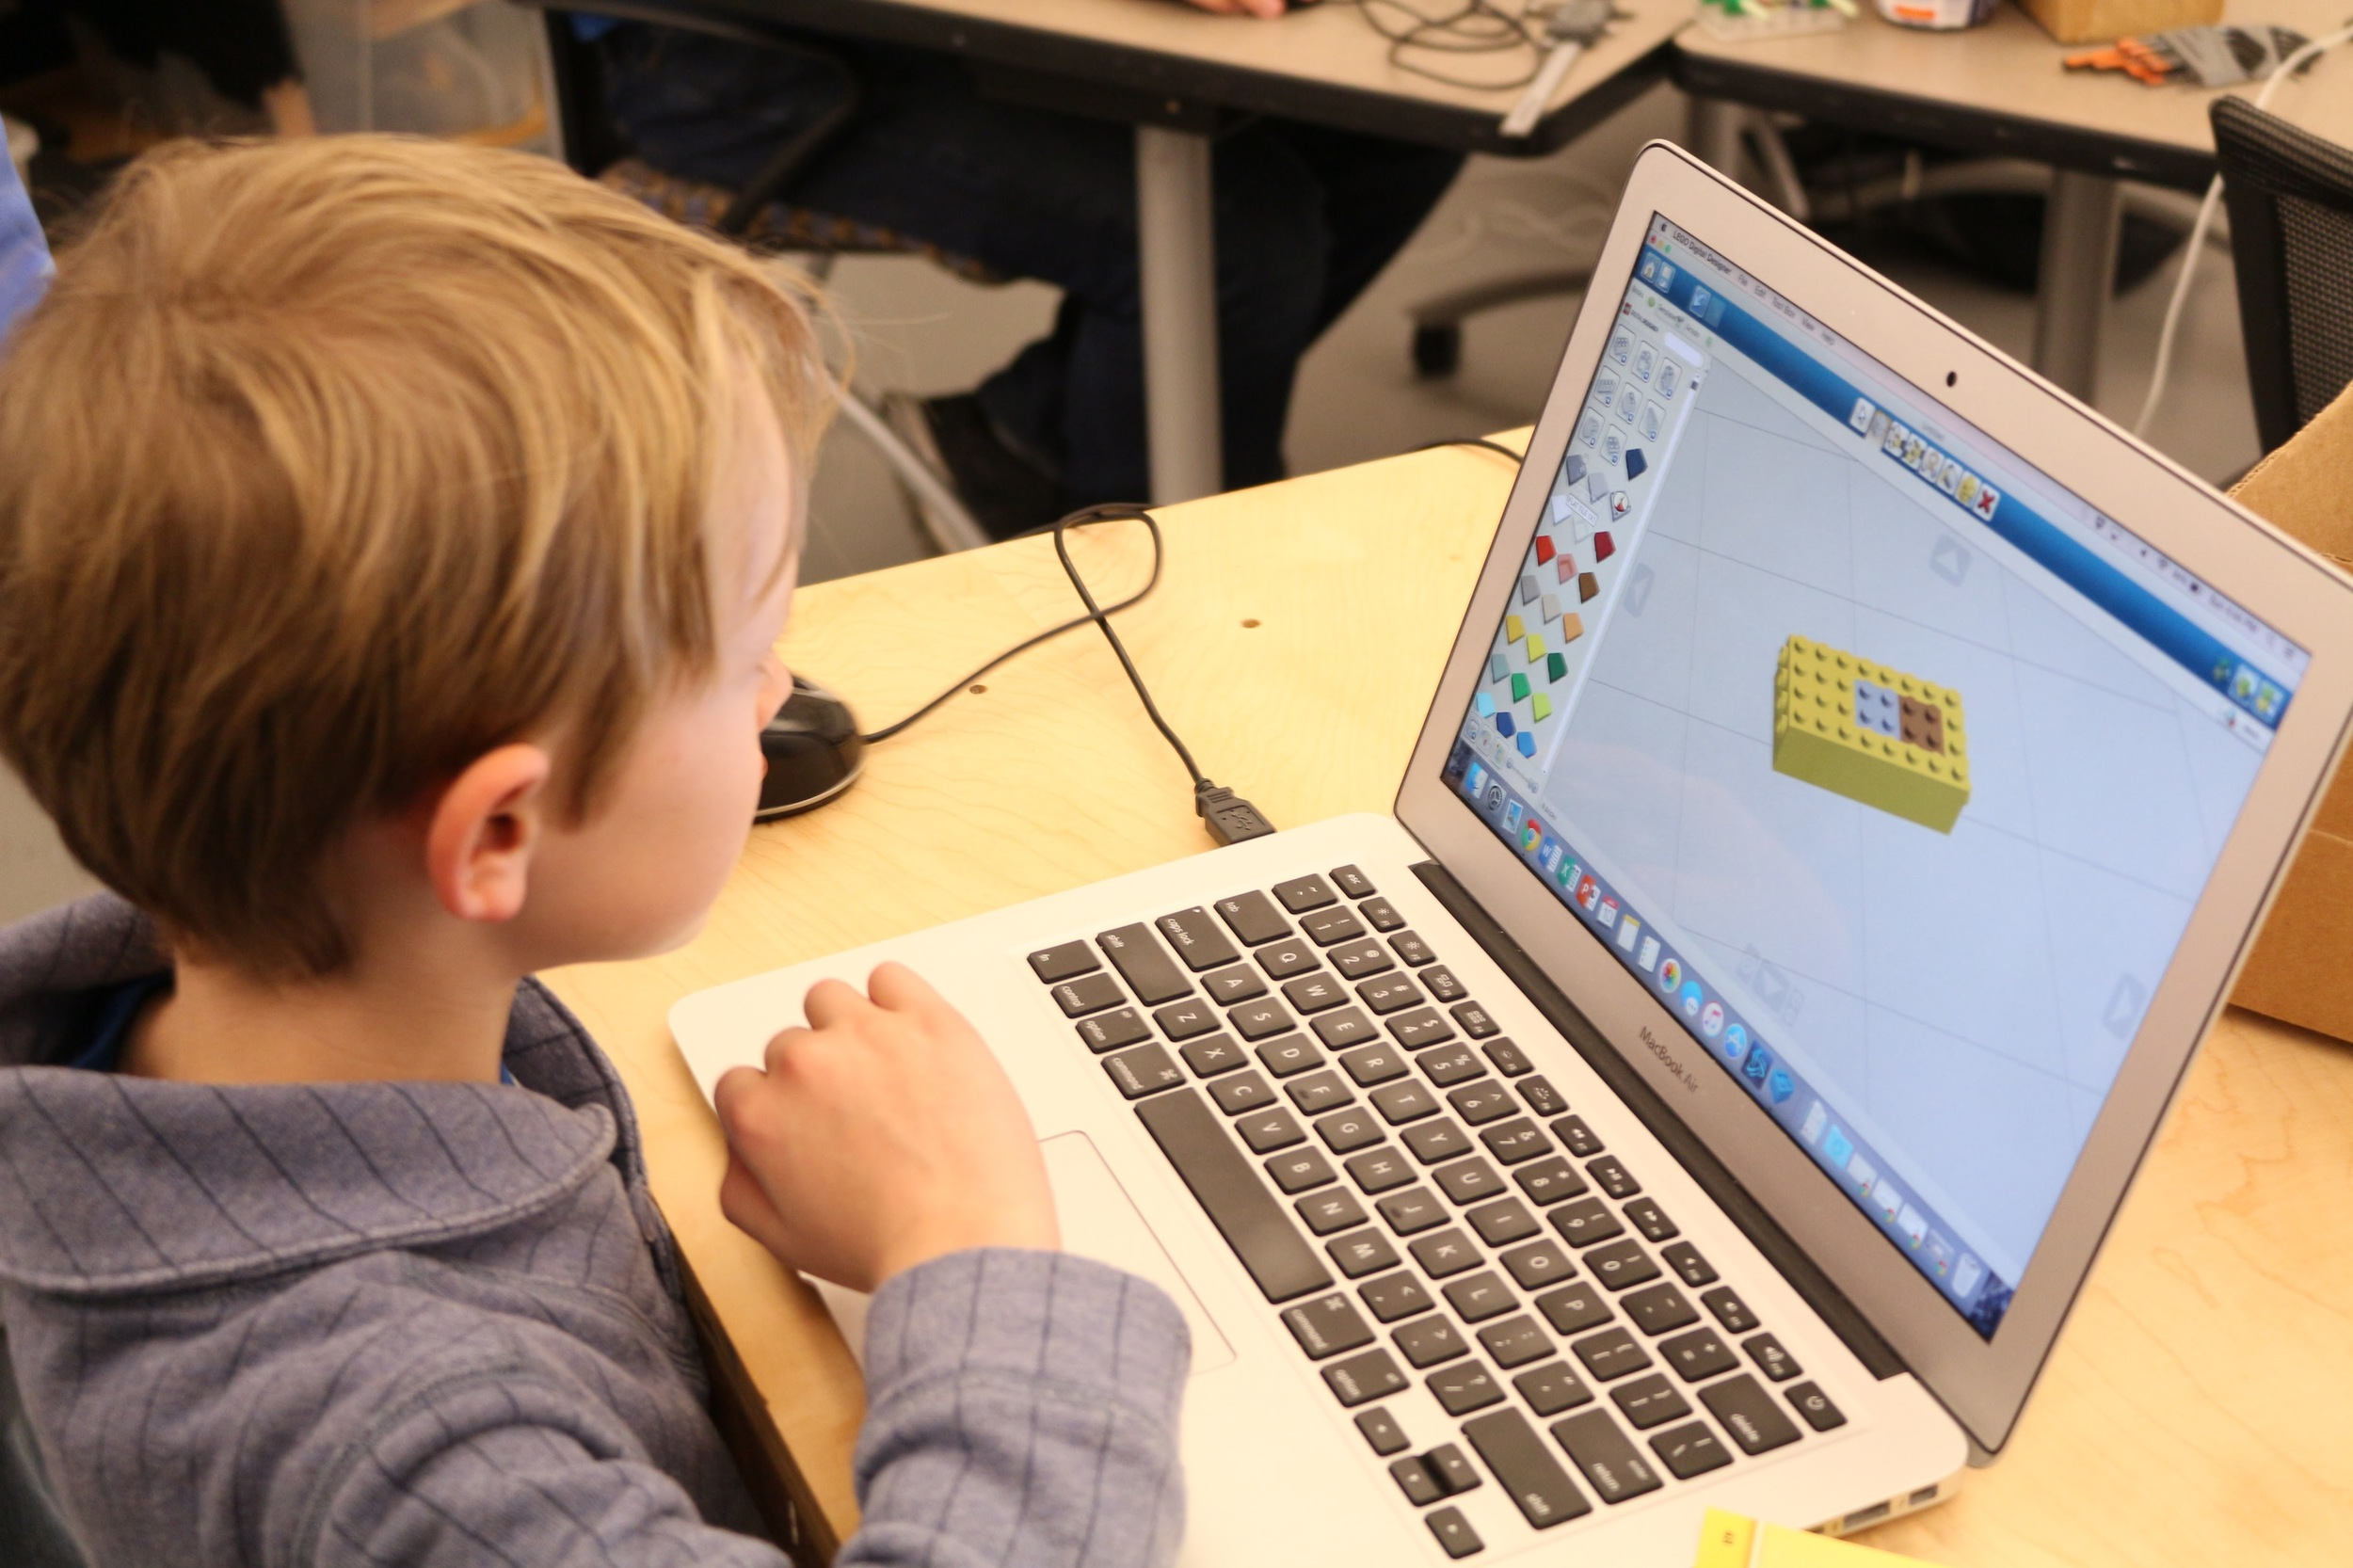 Charlie builds a car in Lego Digital Designer.